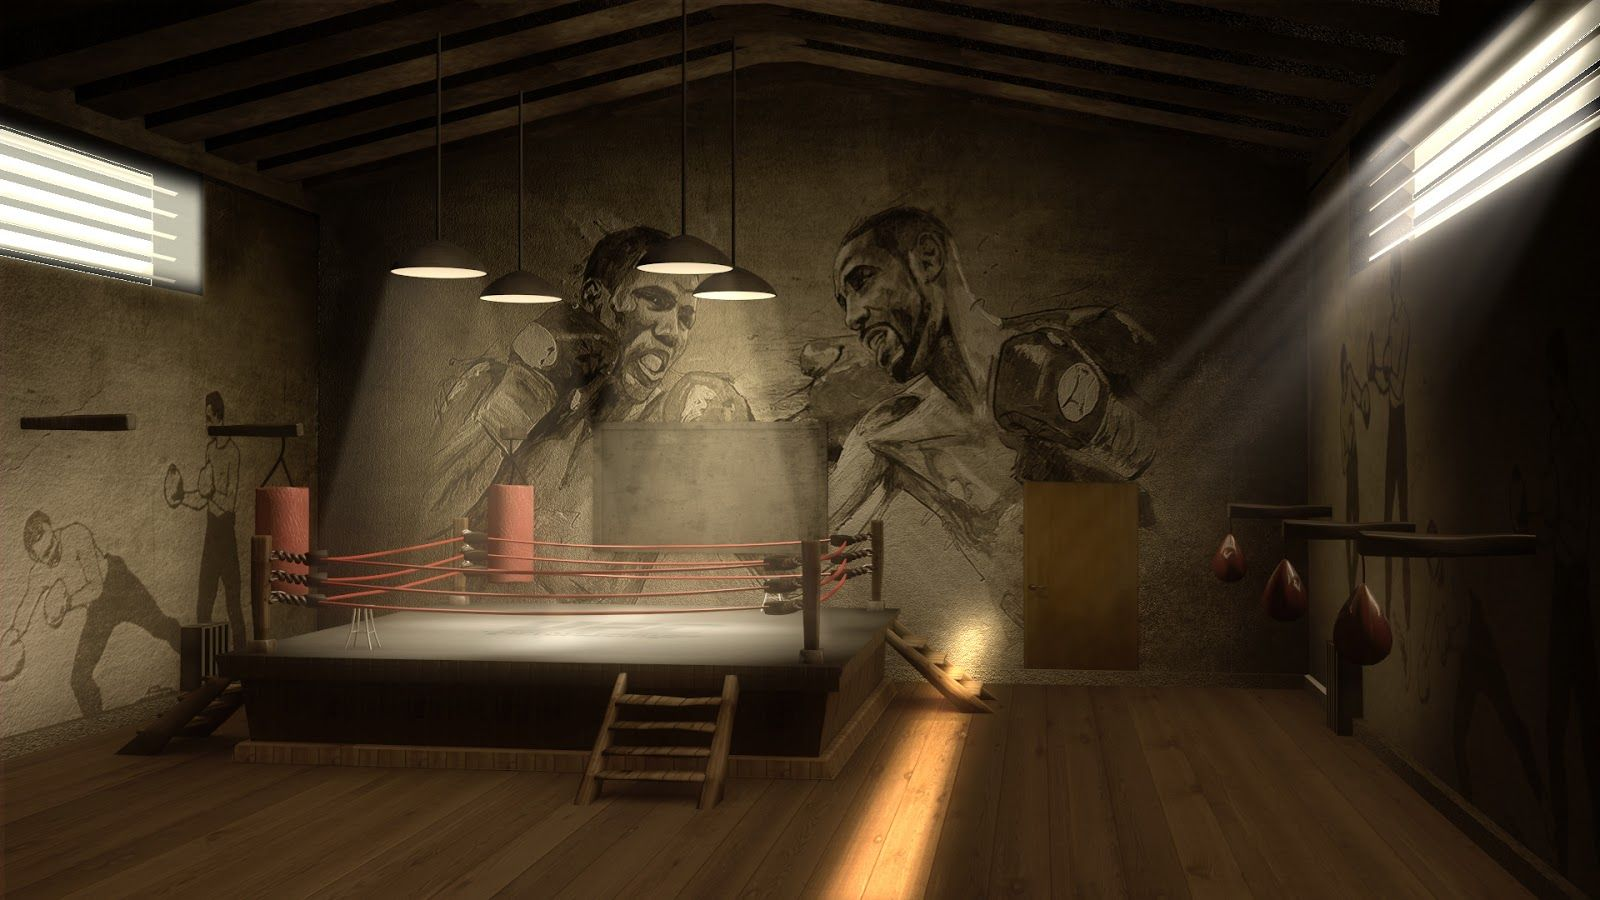 Boxing gym background viewing gallery for boxing gym wallpaper